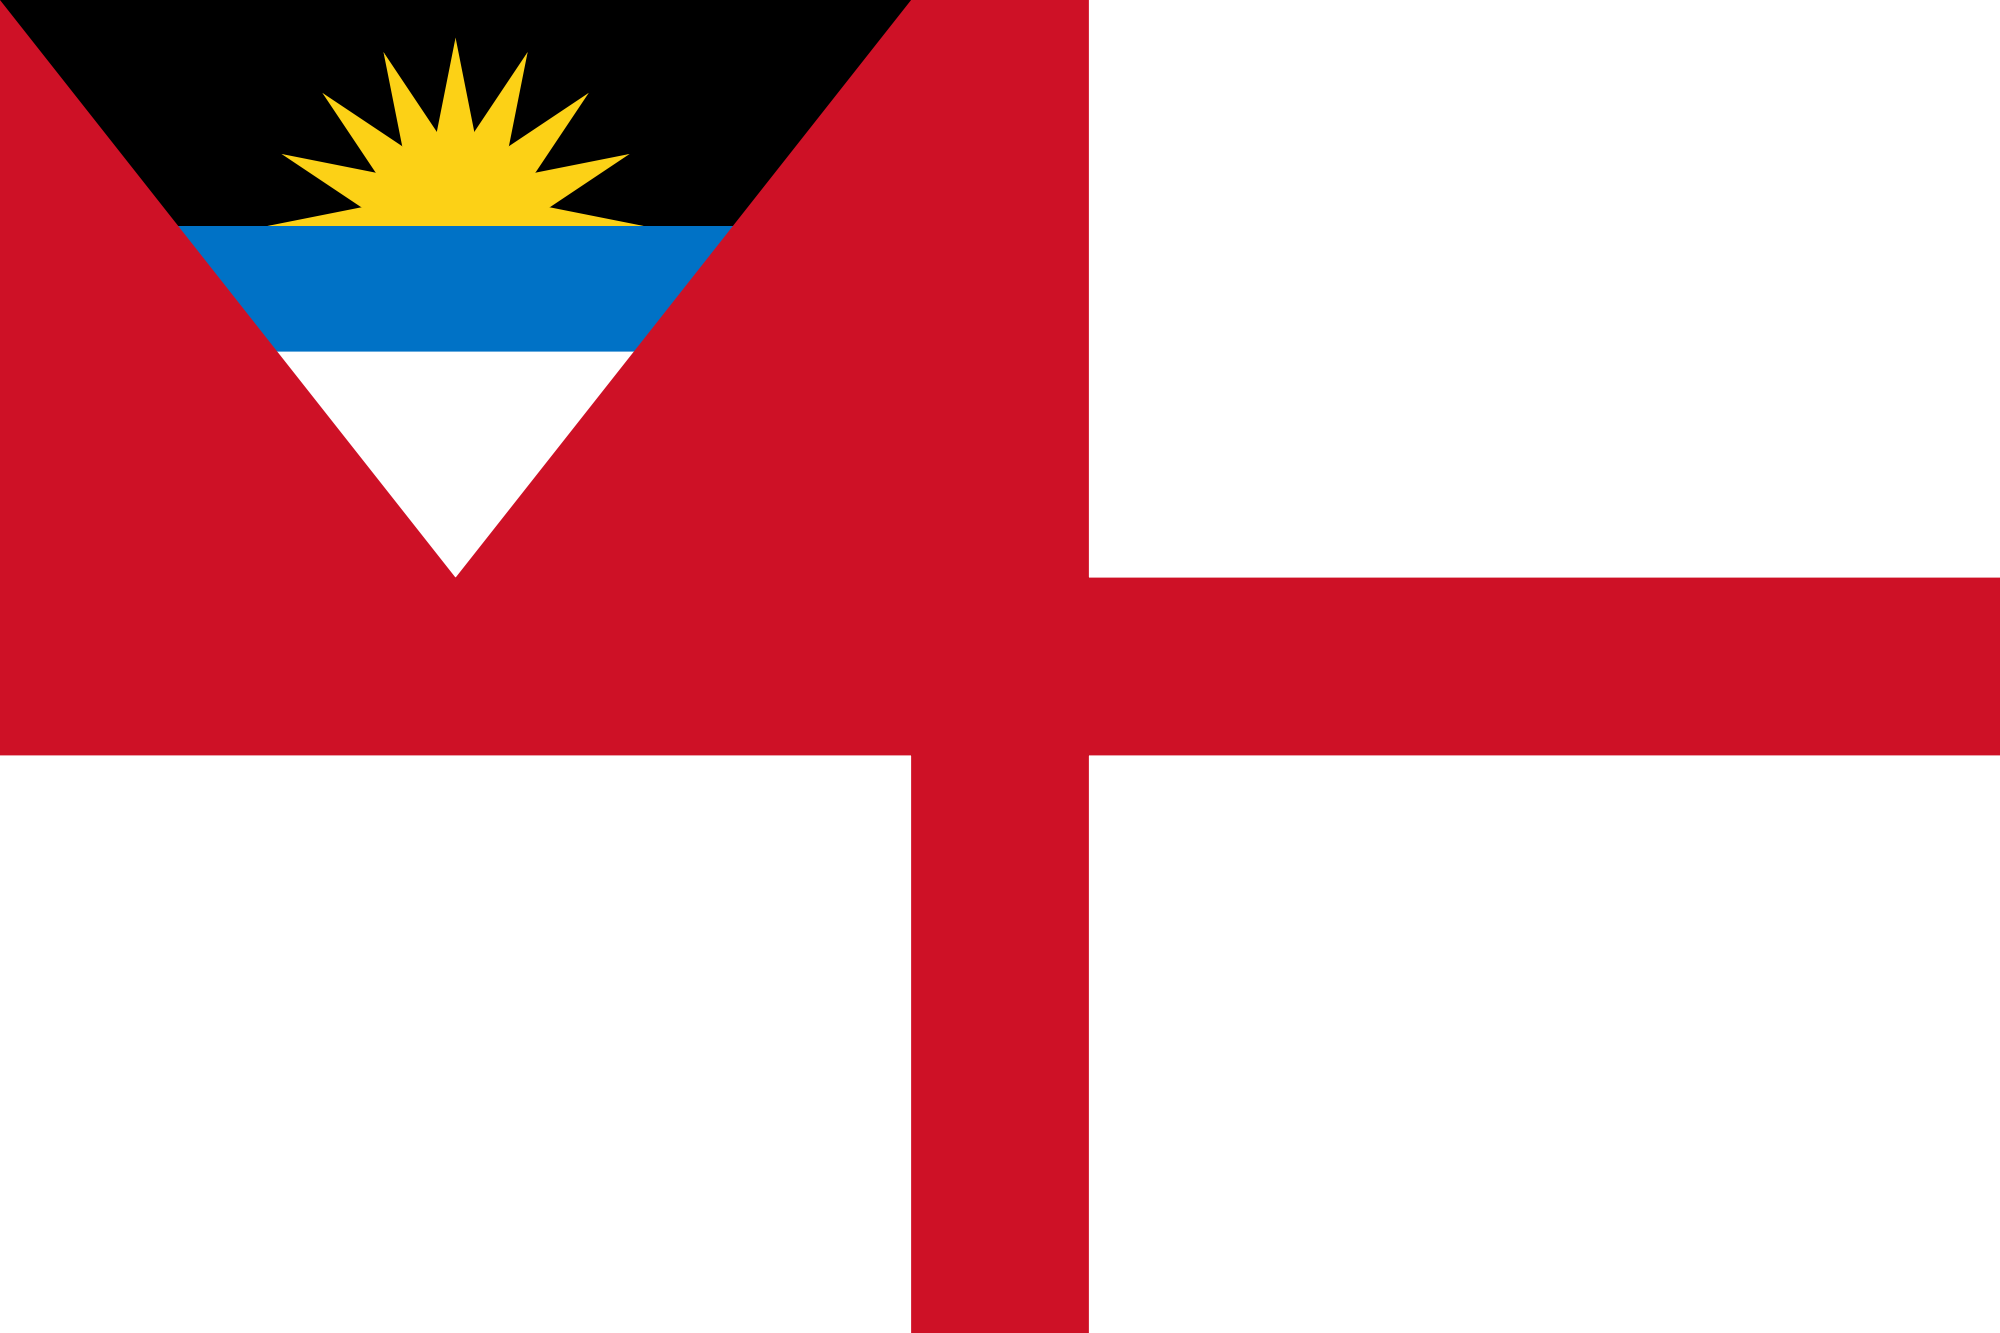 Antigua and Barbuda (Naval ensign)